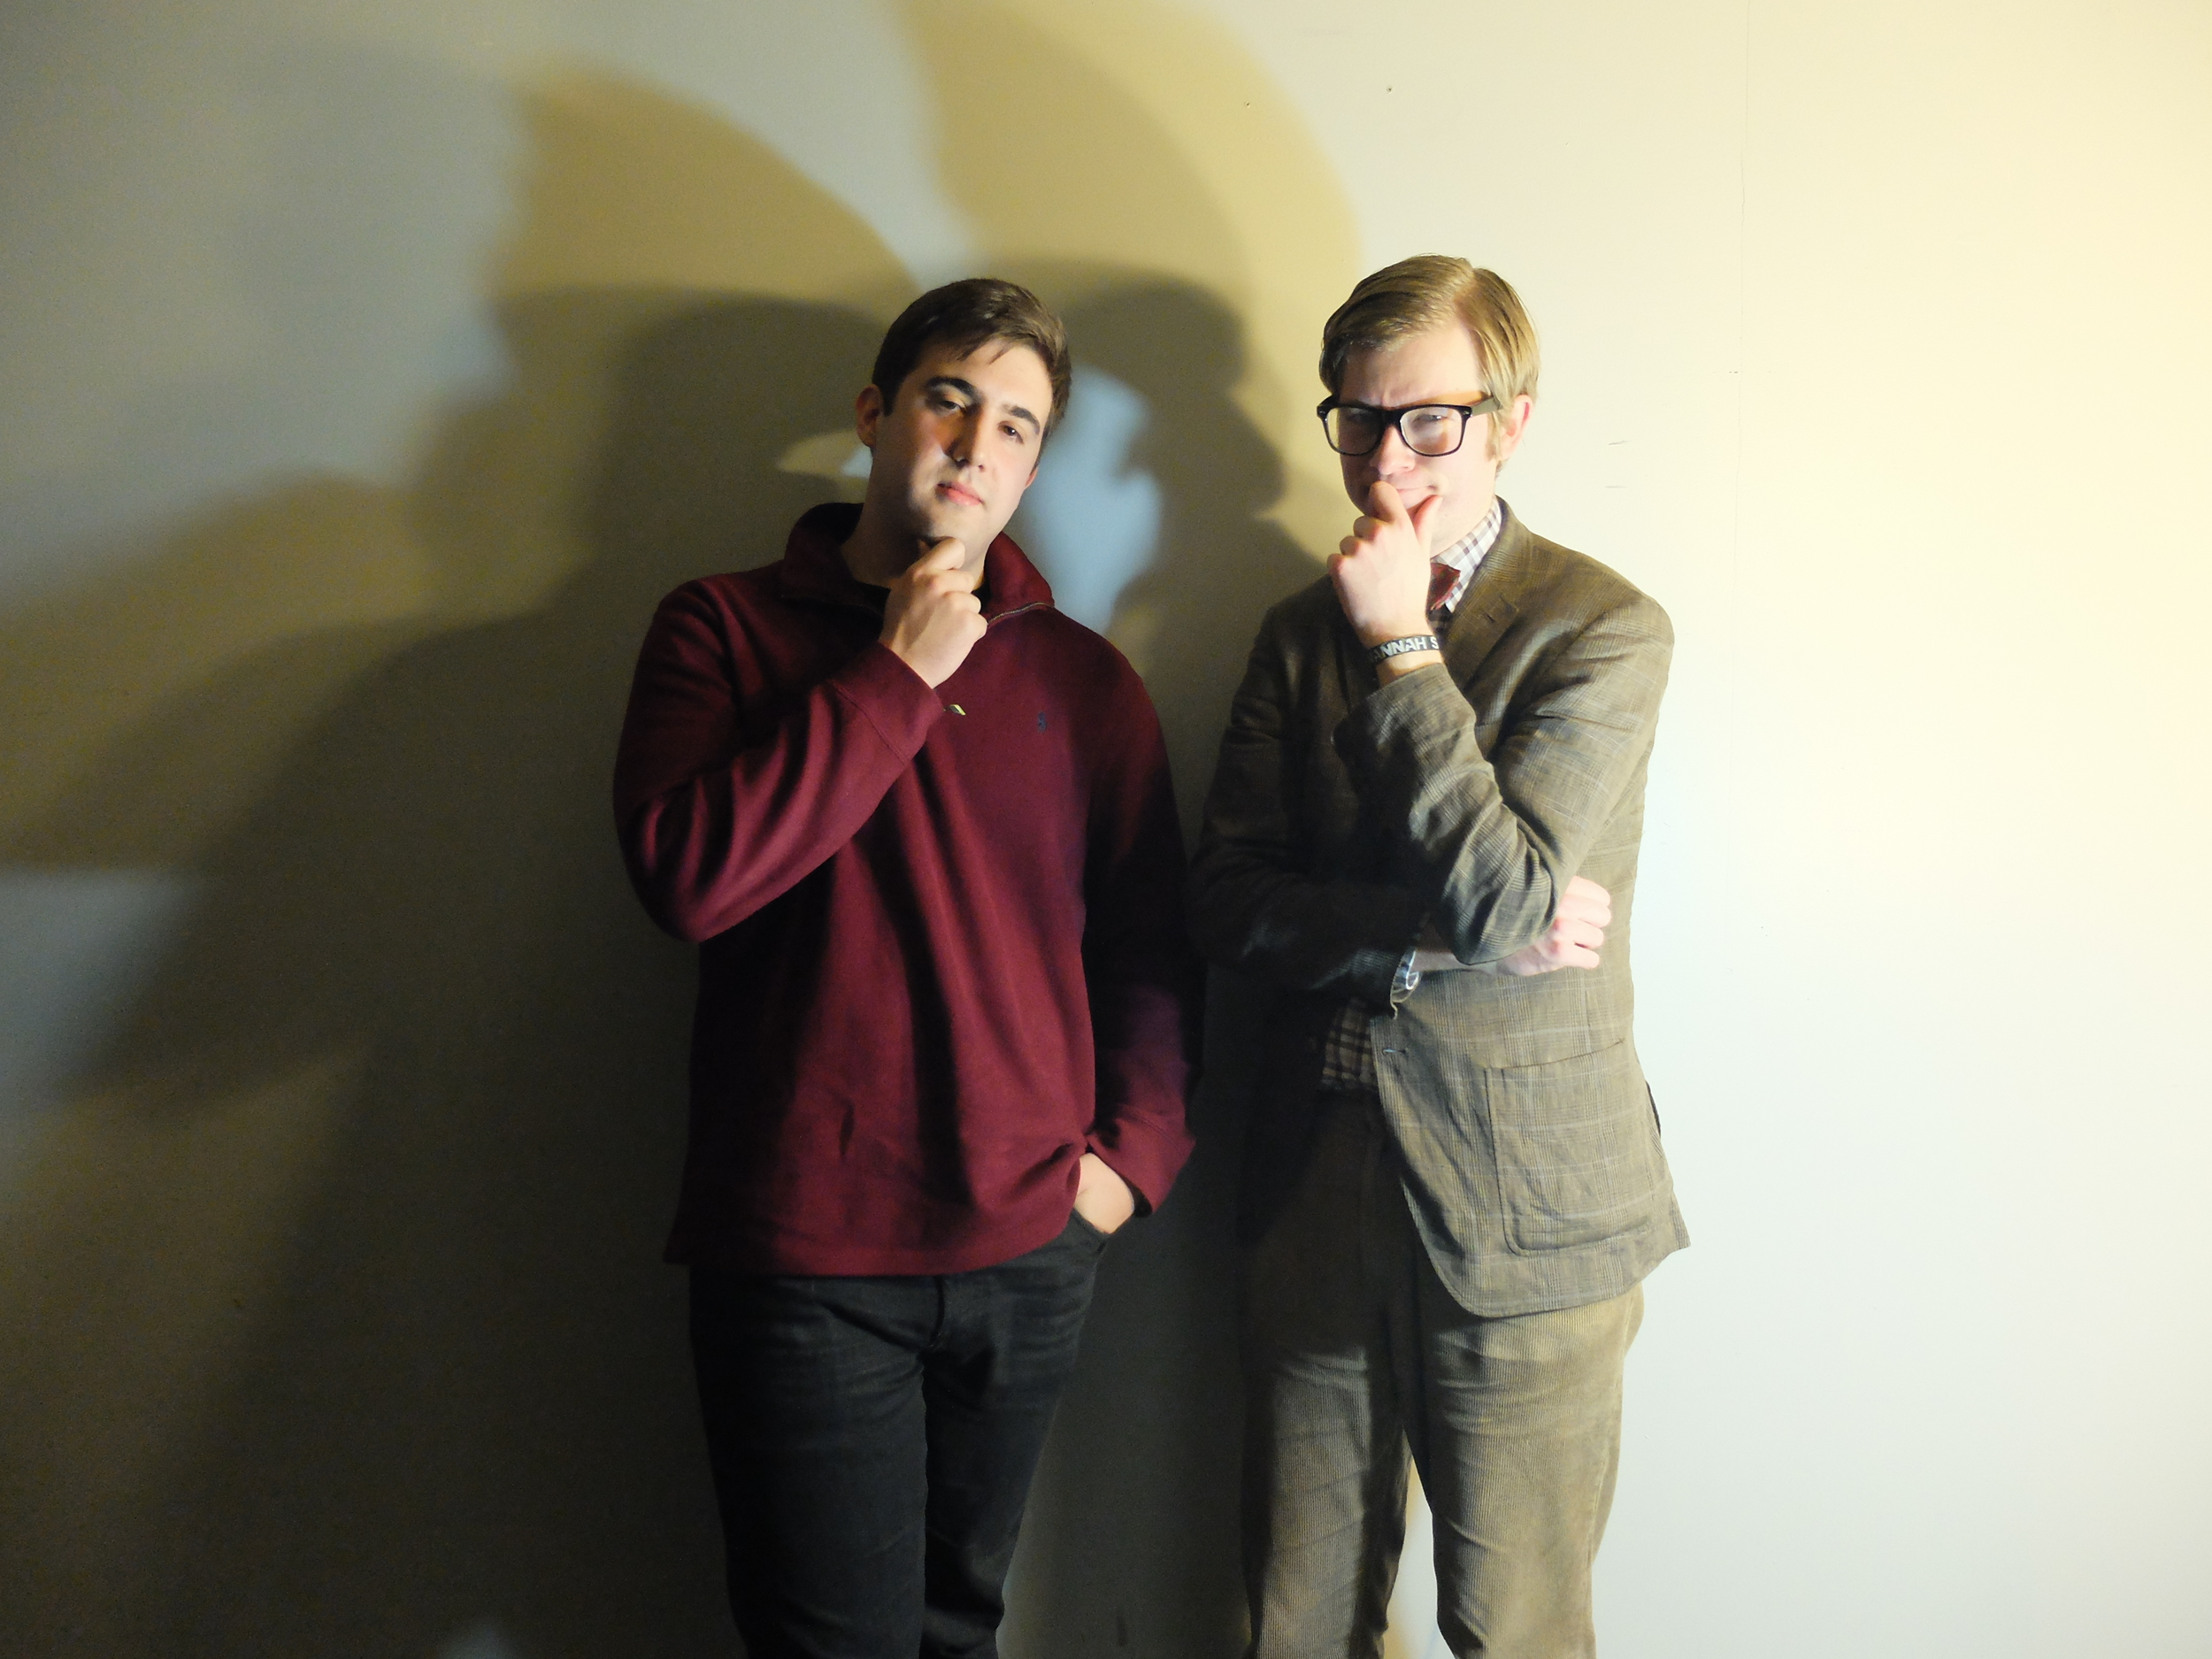 J. Willgoose, Esq. from Public Service Broadcasting and I after our interview.  Photograph by Nicole Miller